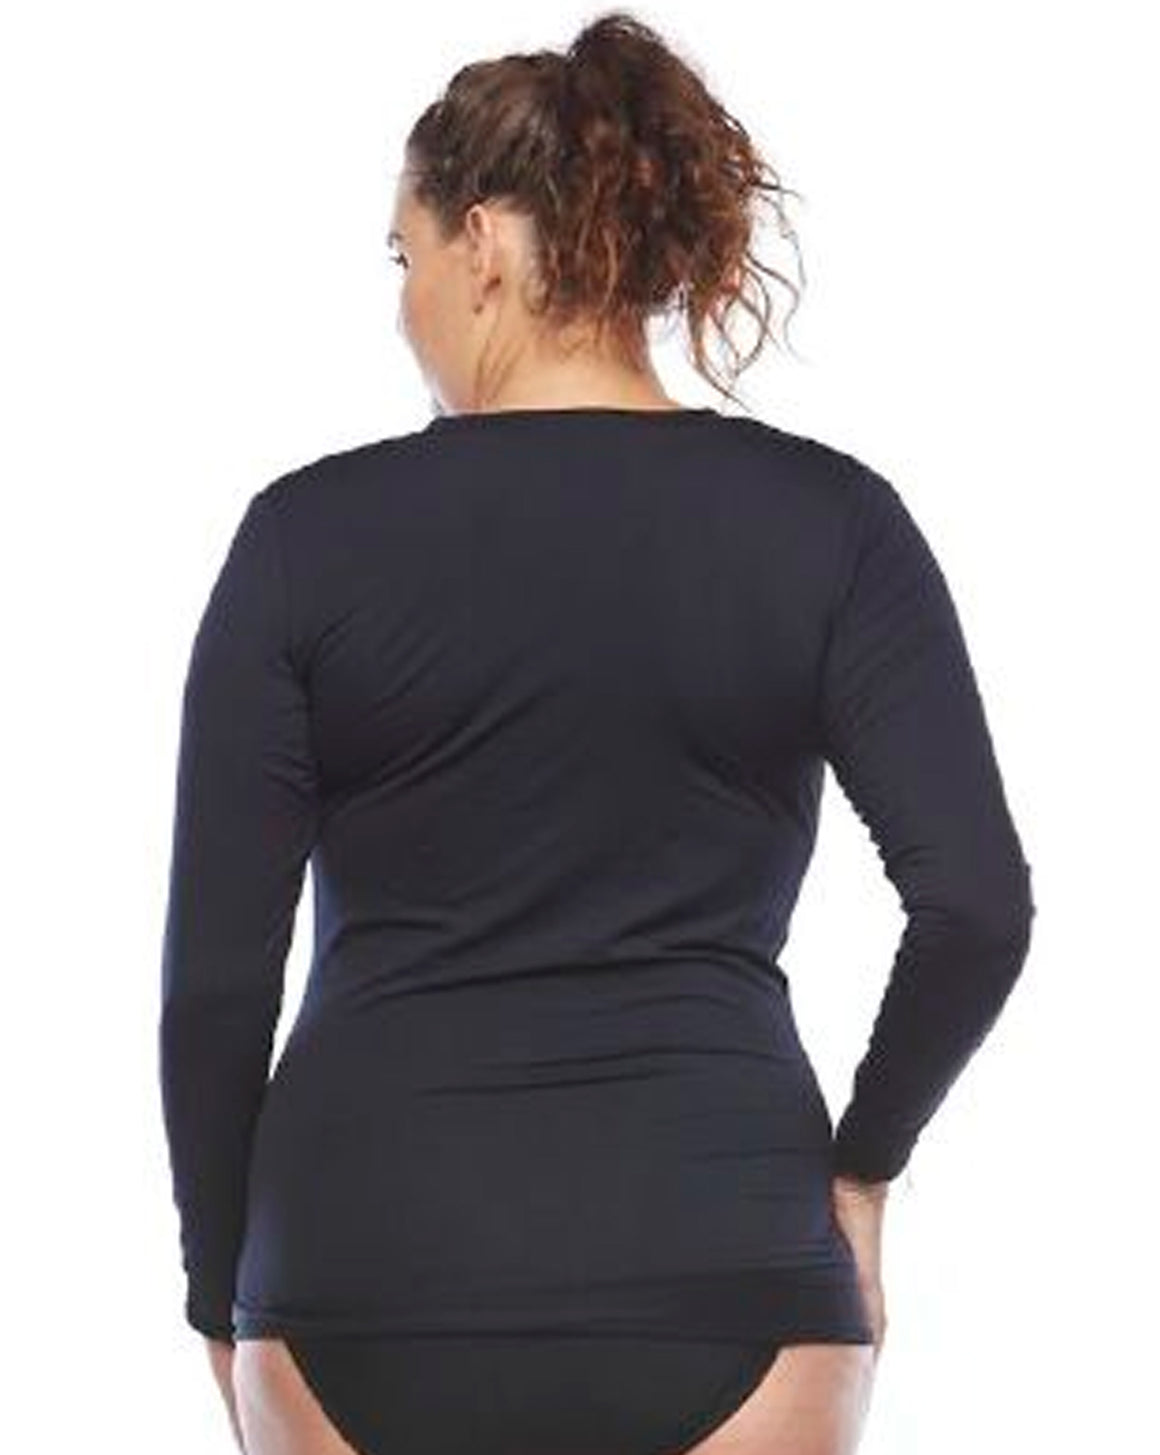 Back View Plus Size Rashie | Curvy Chic Sports